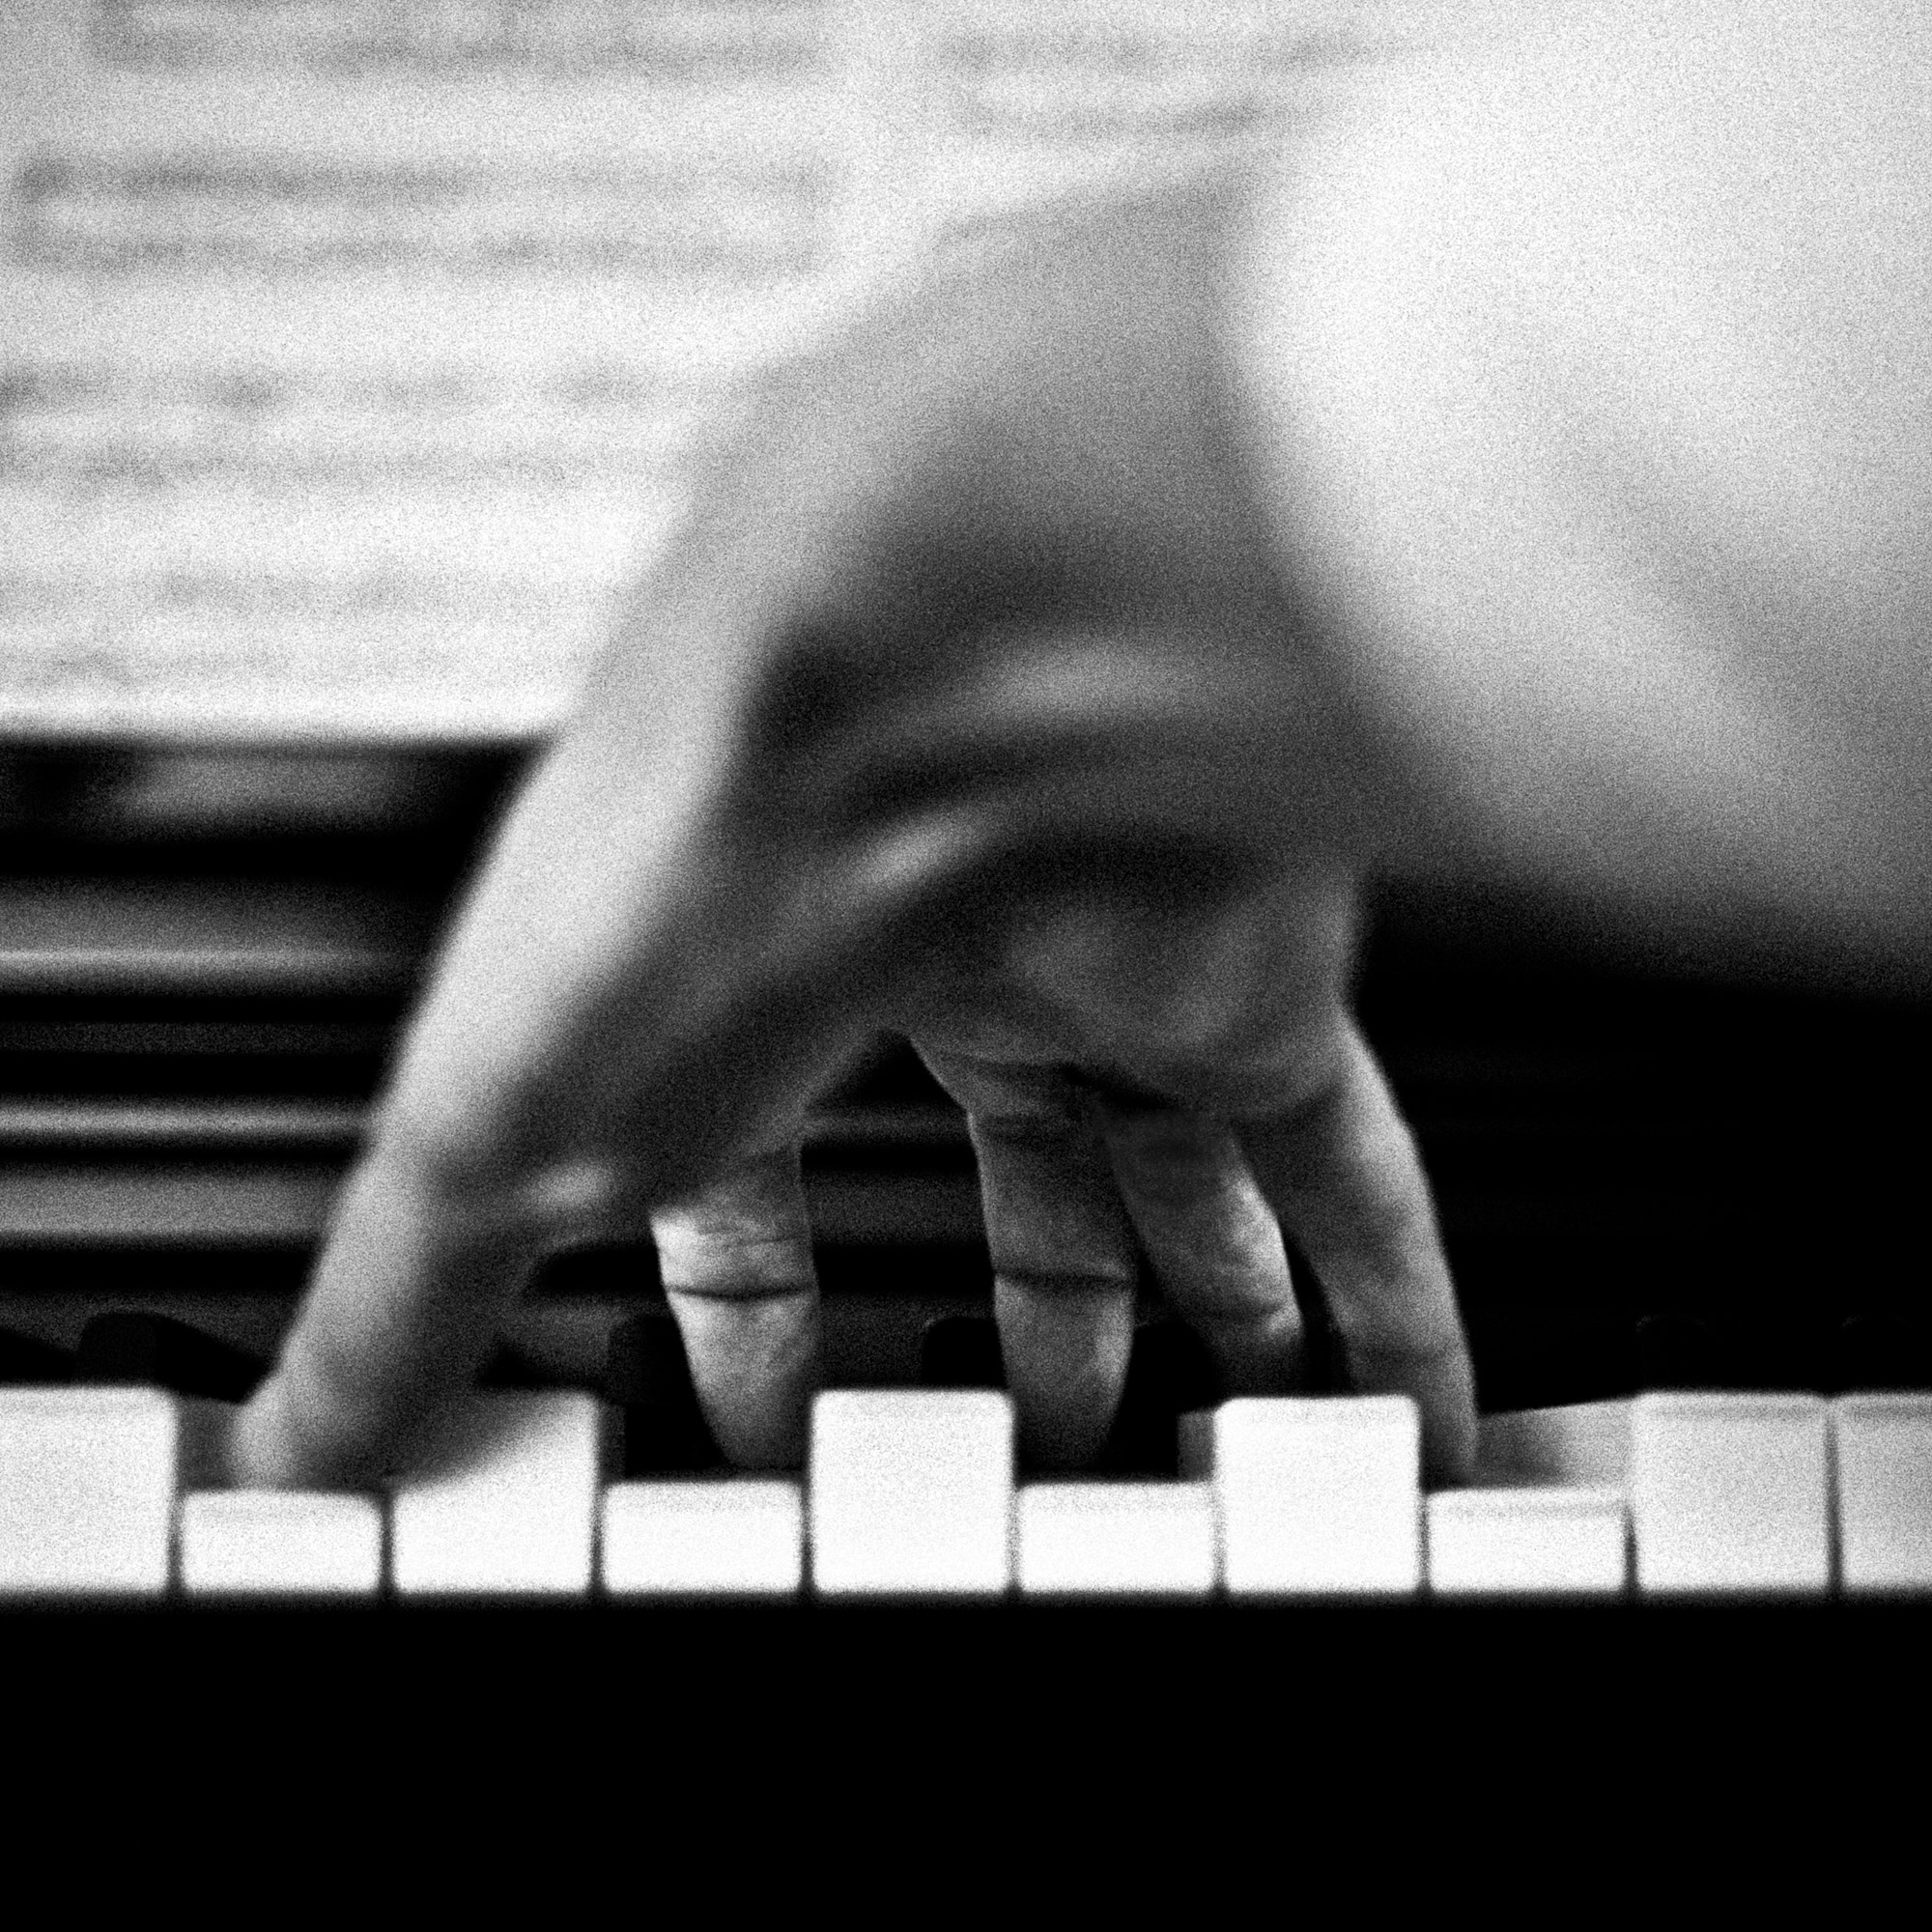 Photograph Le pianiste by Benoit COURTI on 500px